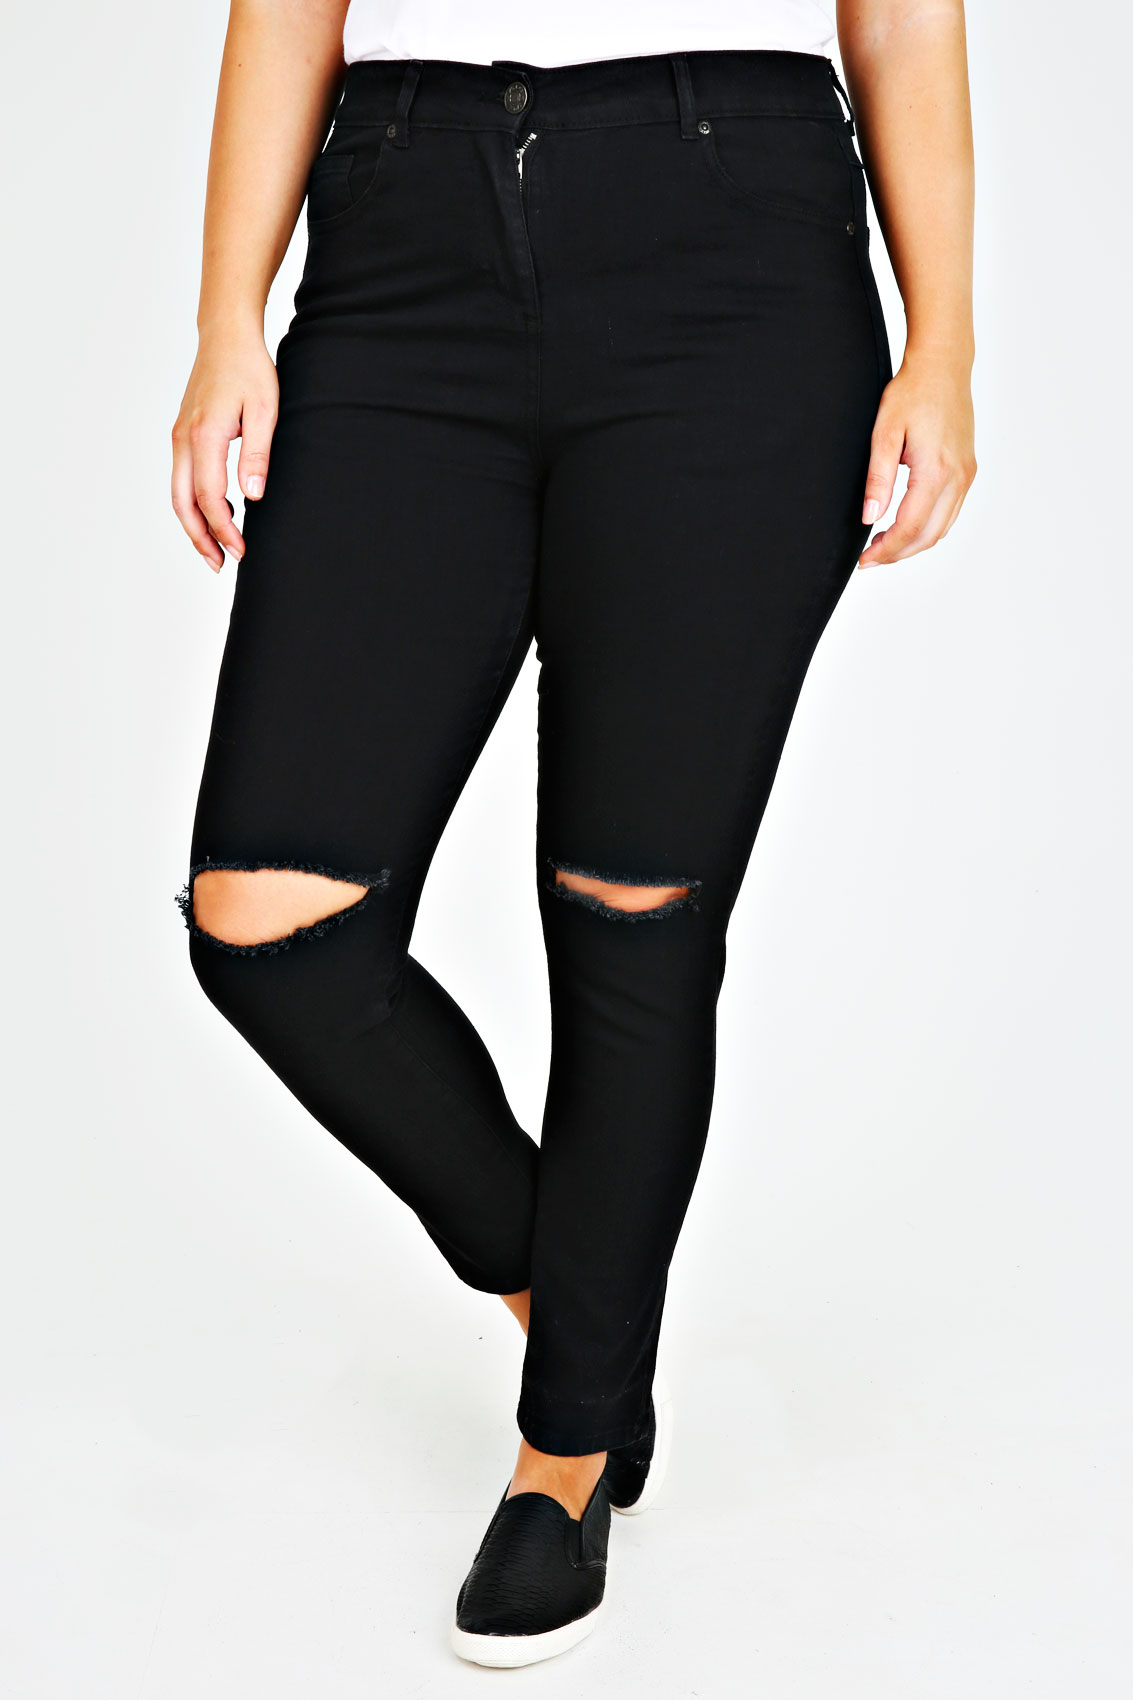 Black Stretch Skinny Jeans With Ripped Knee plus Size 14 to 28